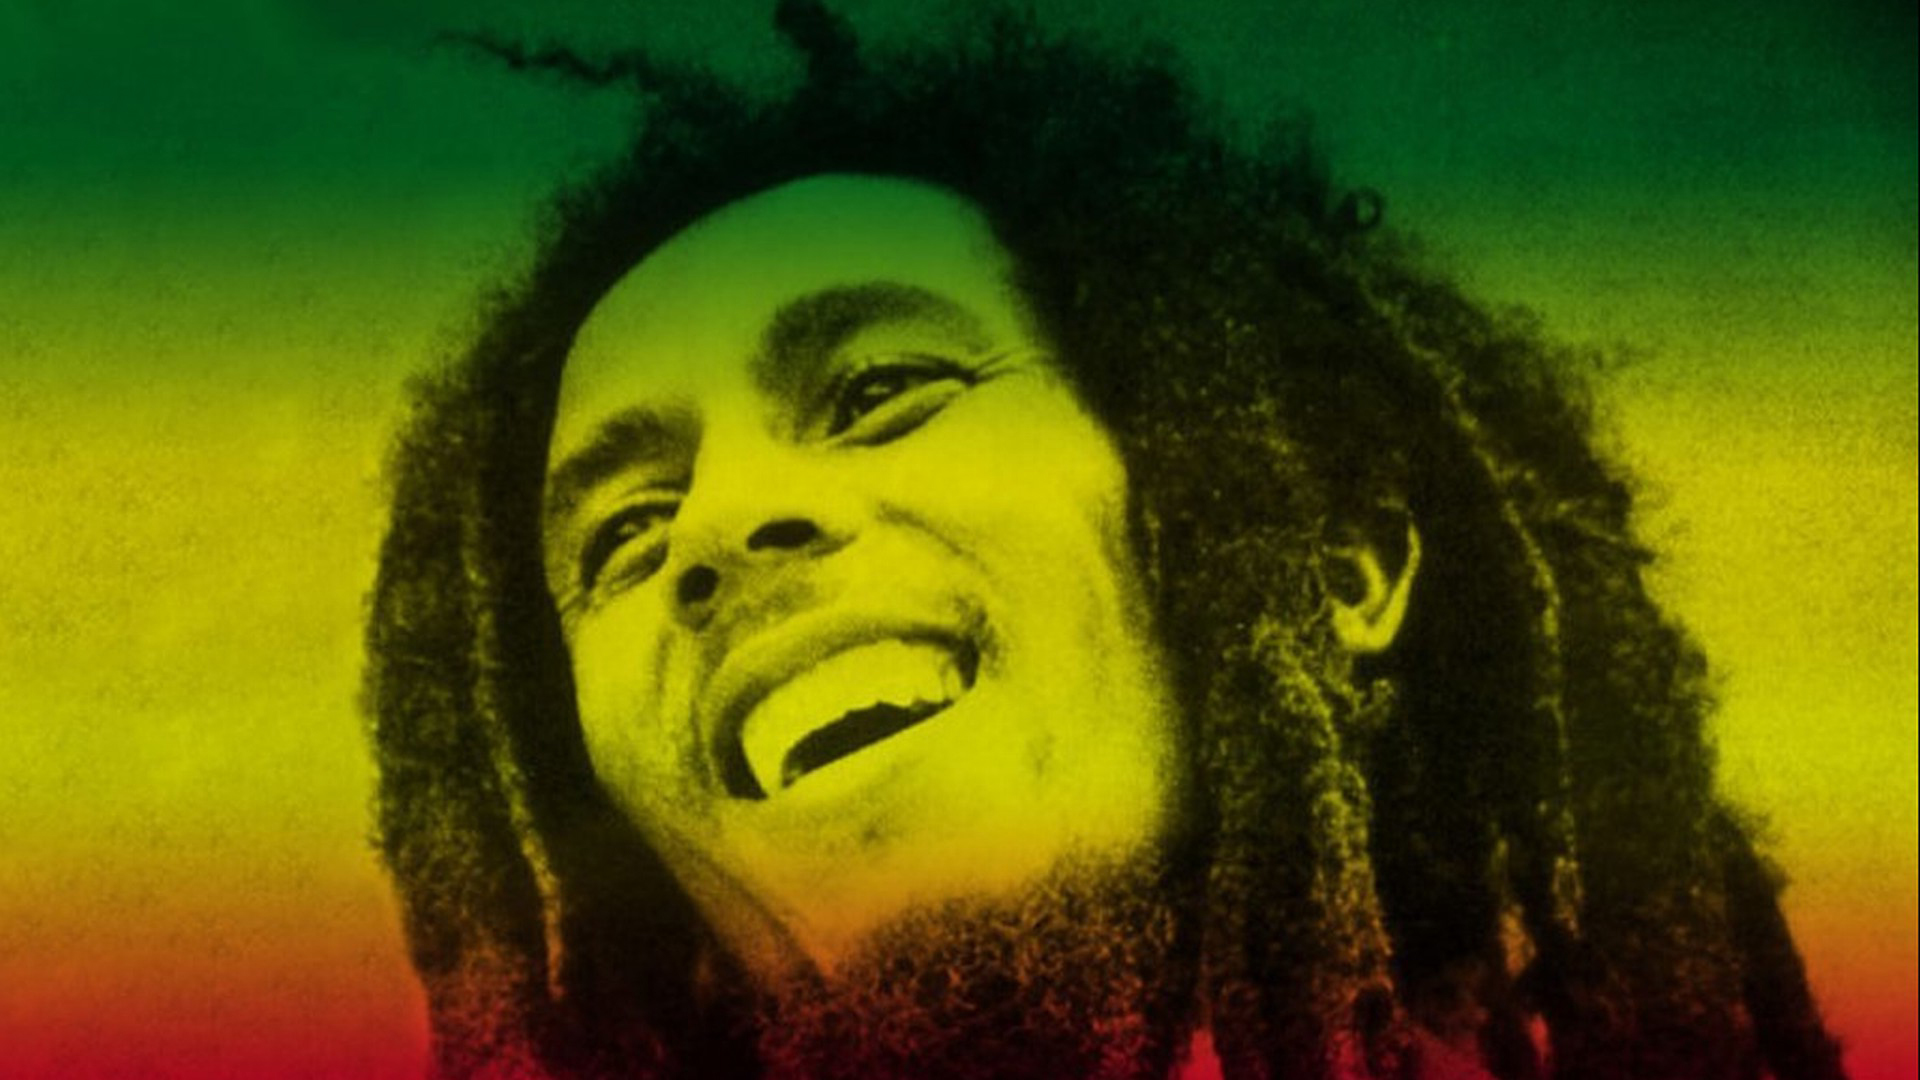 bob marley wallpapers images photos pictures backgrounds